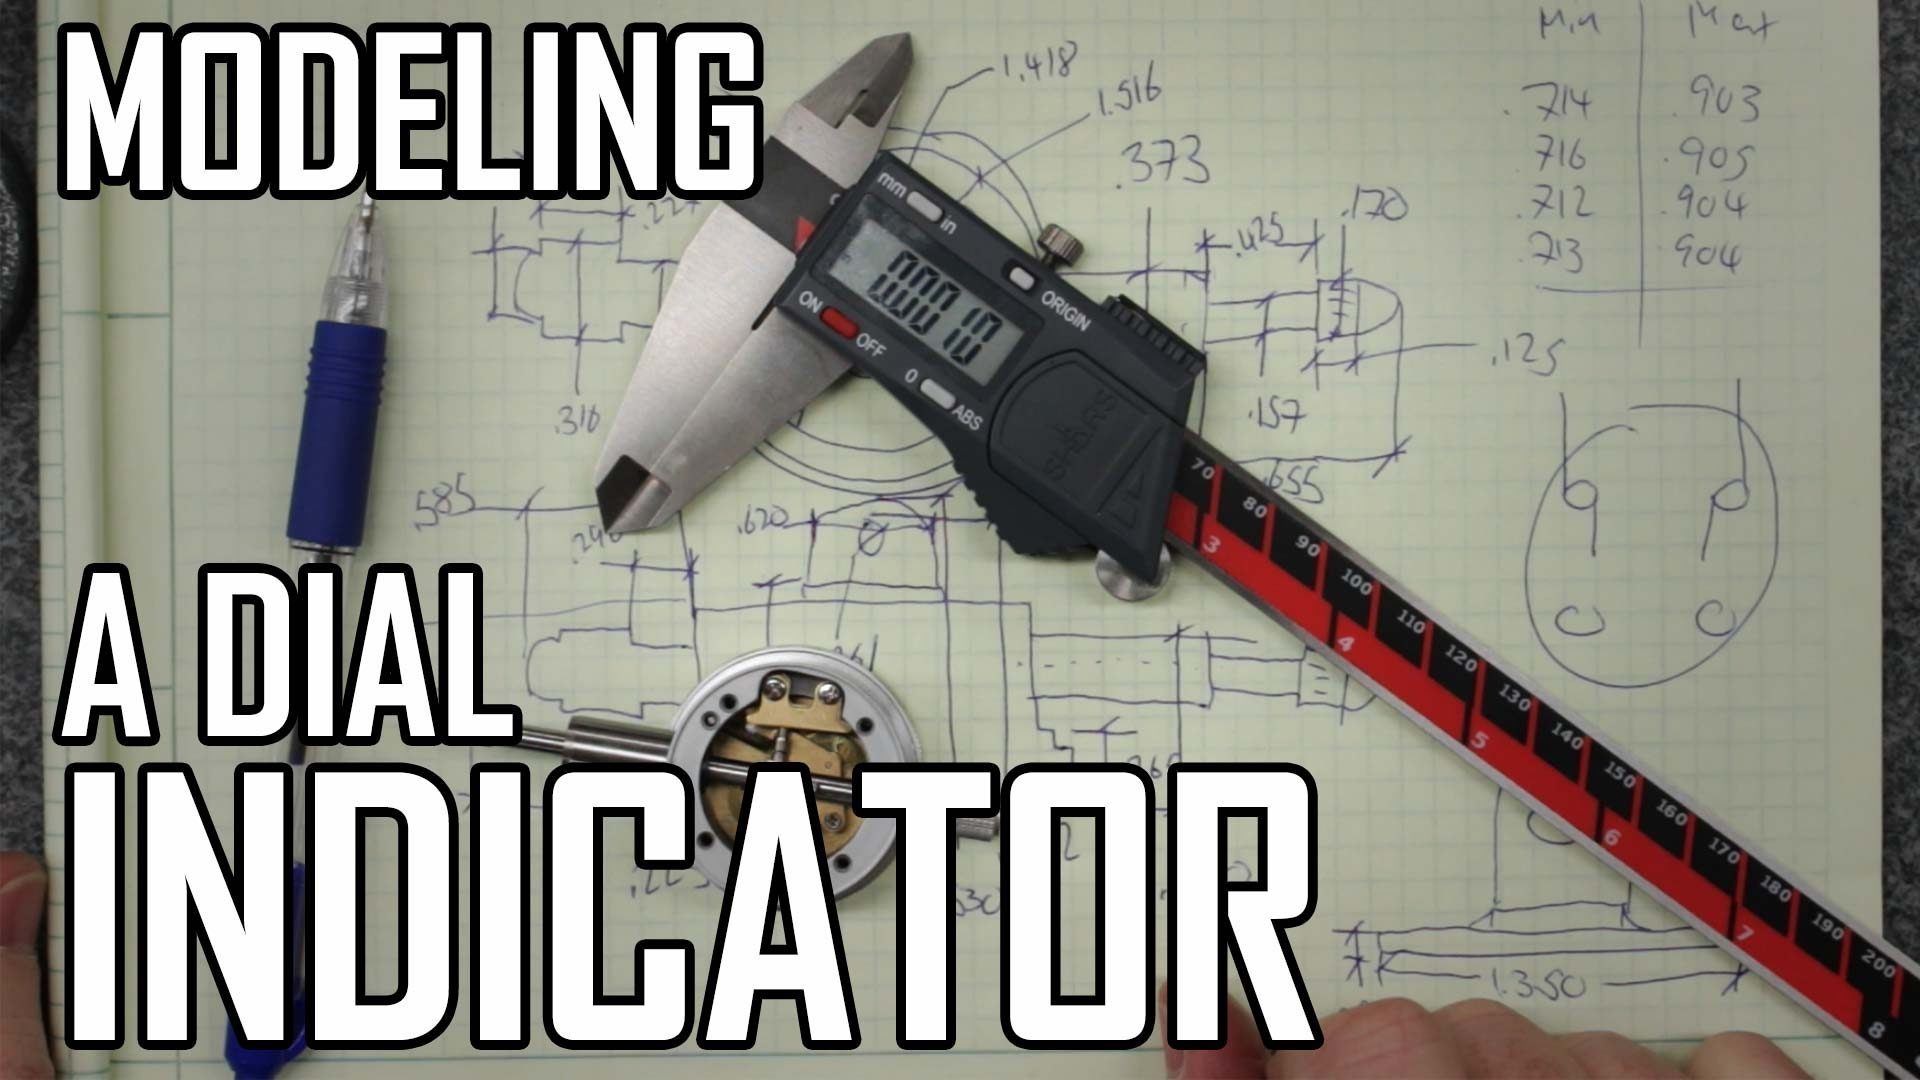 Toolpost Dial Indicator Part 1: Modeling the Indicator